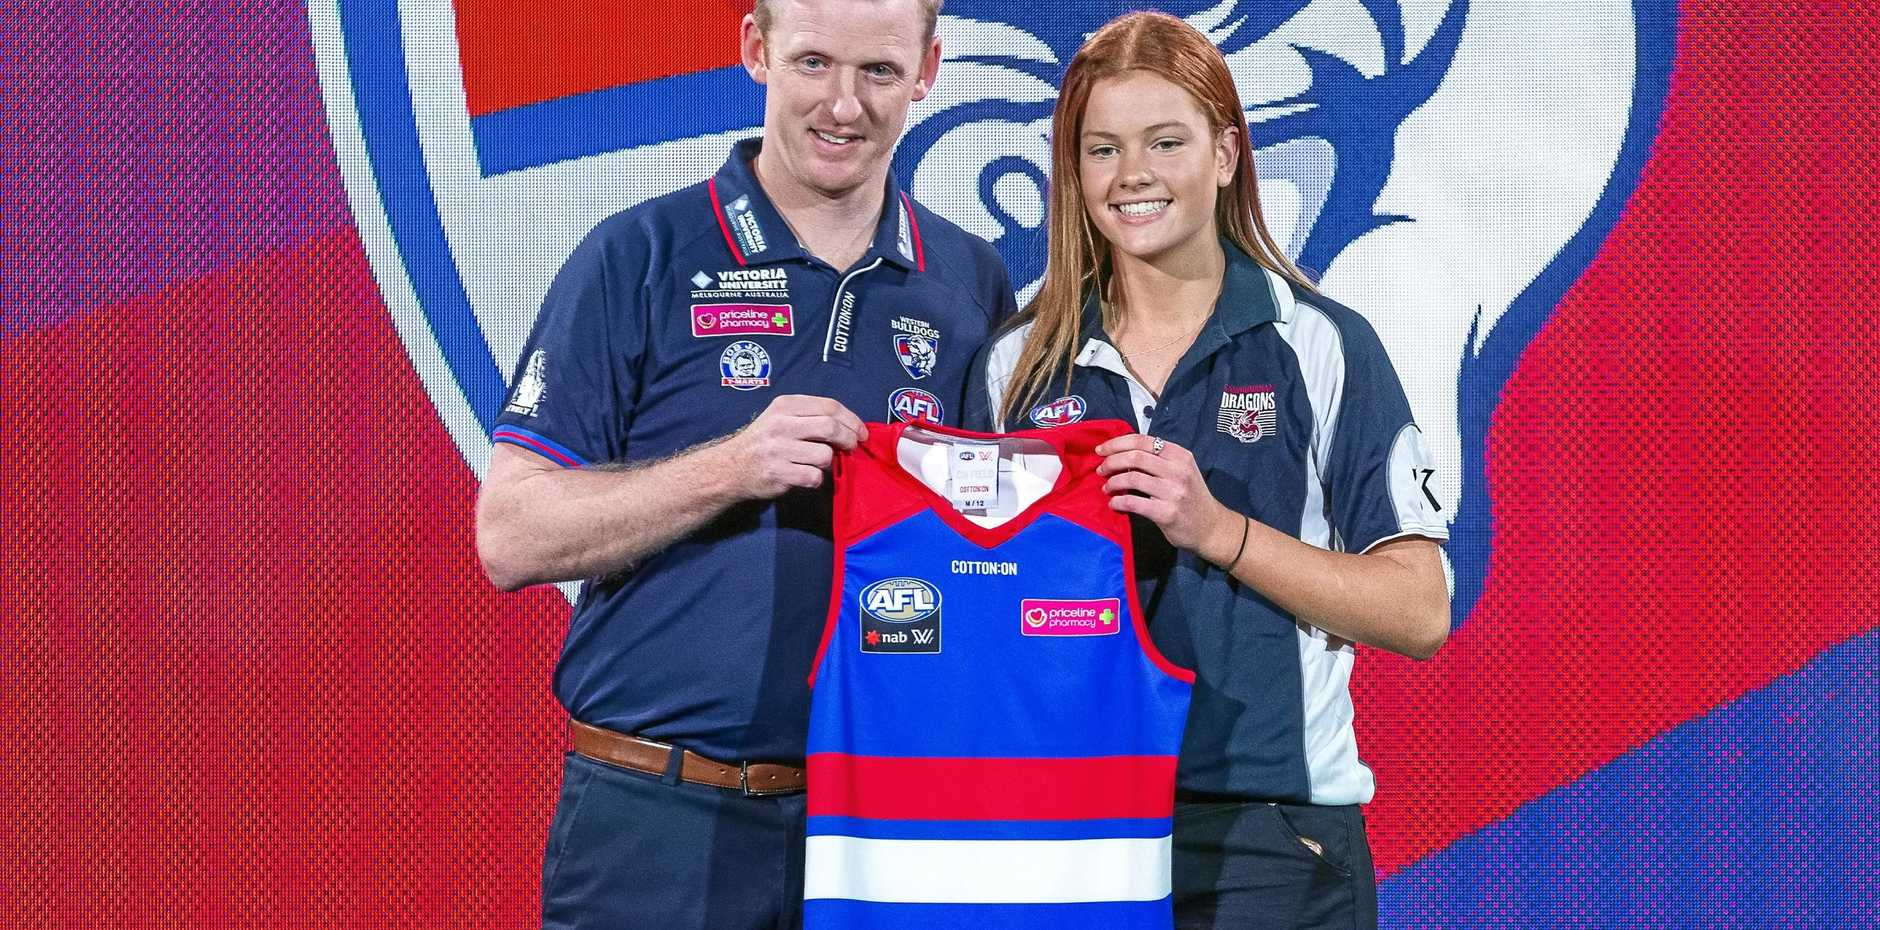 Bulldogs head coach Paul Groves and No.10 pick Eleanor Brown at the 2018 AFLW Draft in Melbourne last month. Picture: Daniel Pockett/AAP